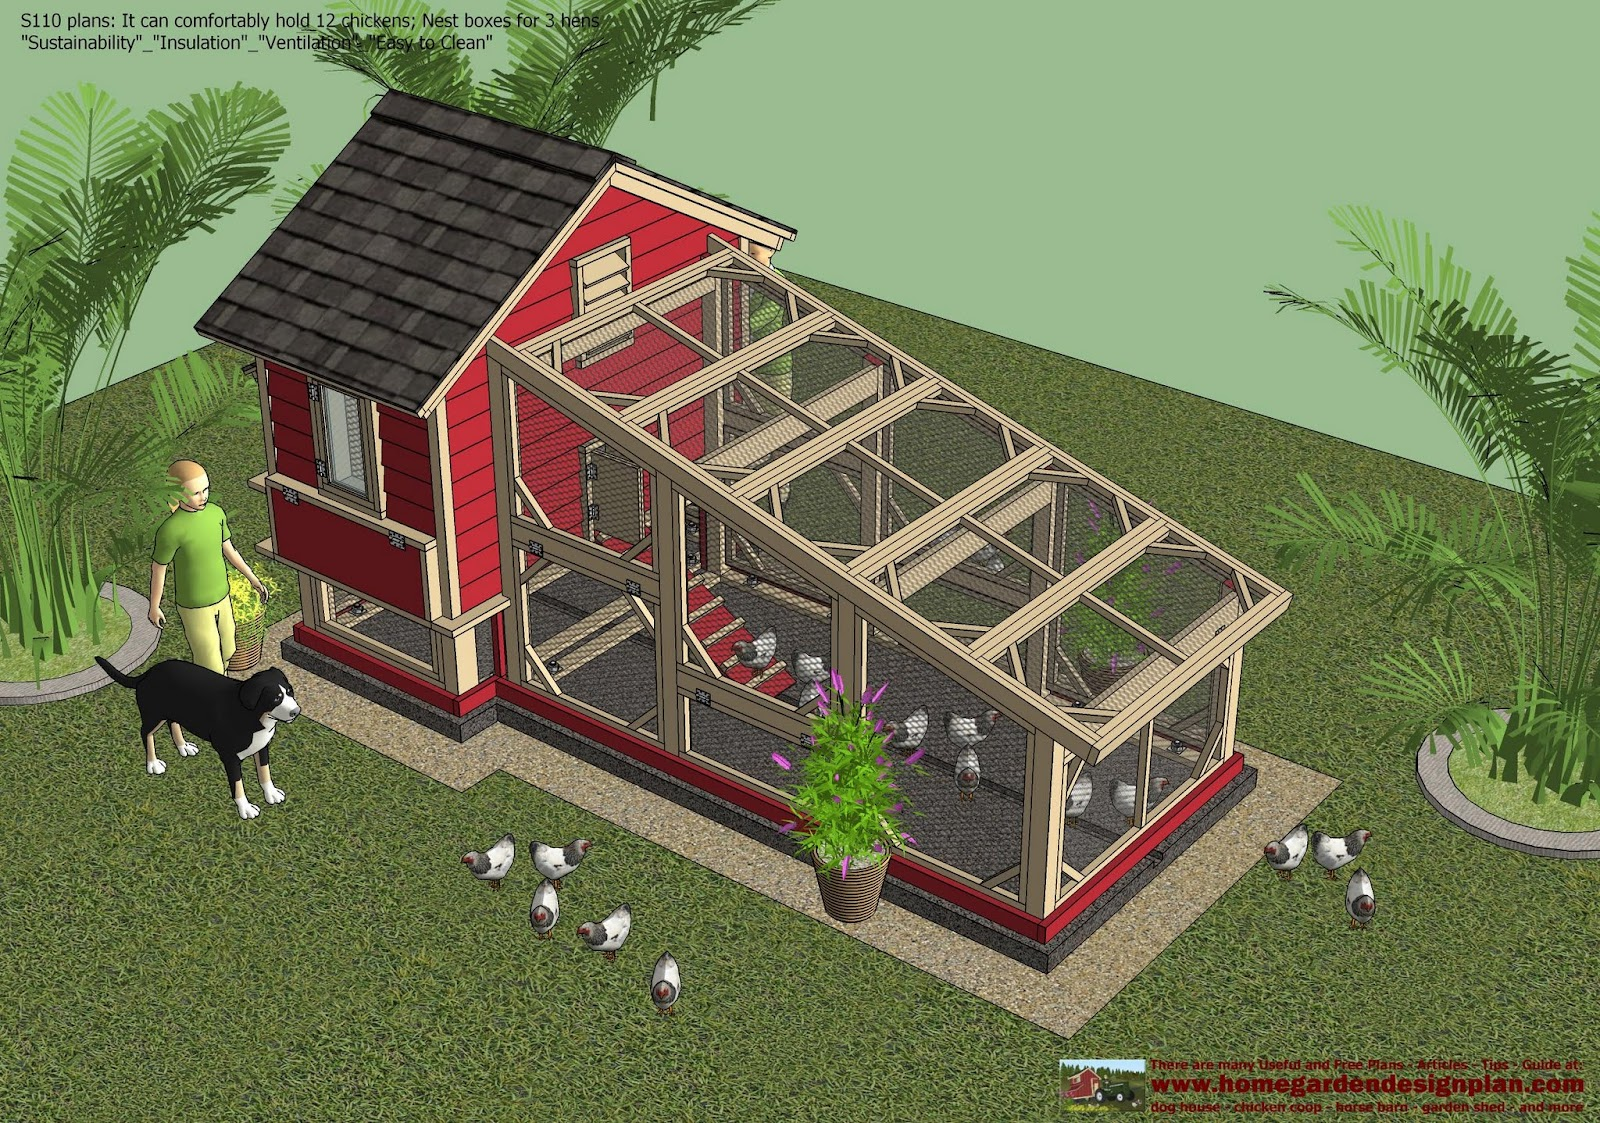 Sntila s110 chicken coop plans construction chicken coop for How to build a chicken hutch